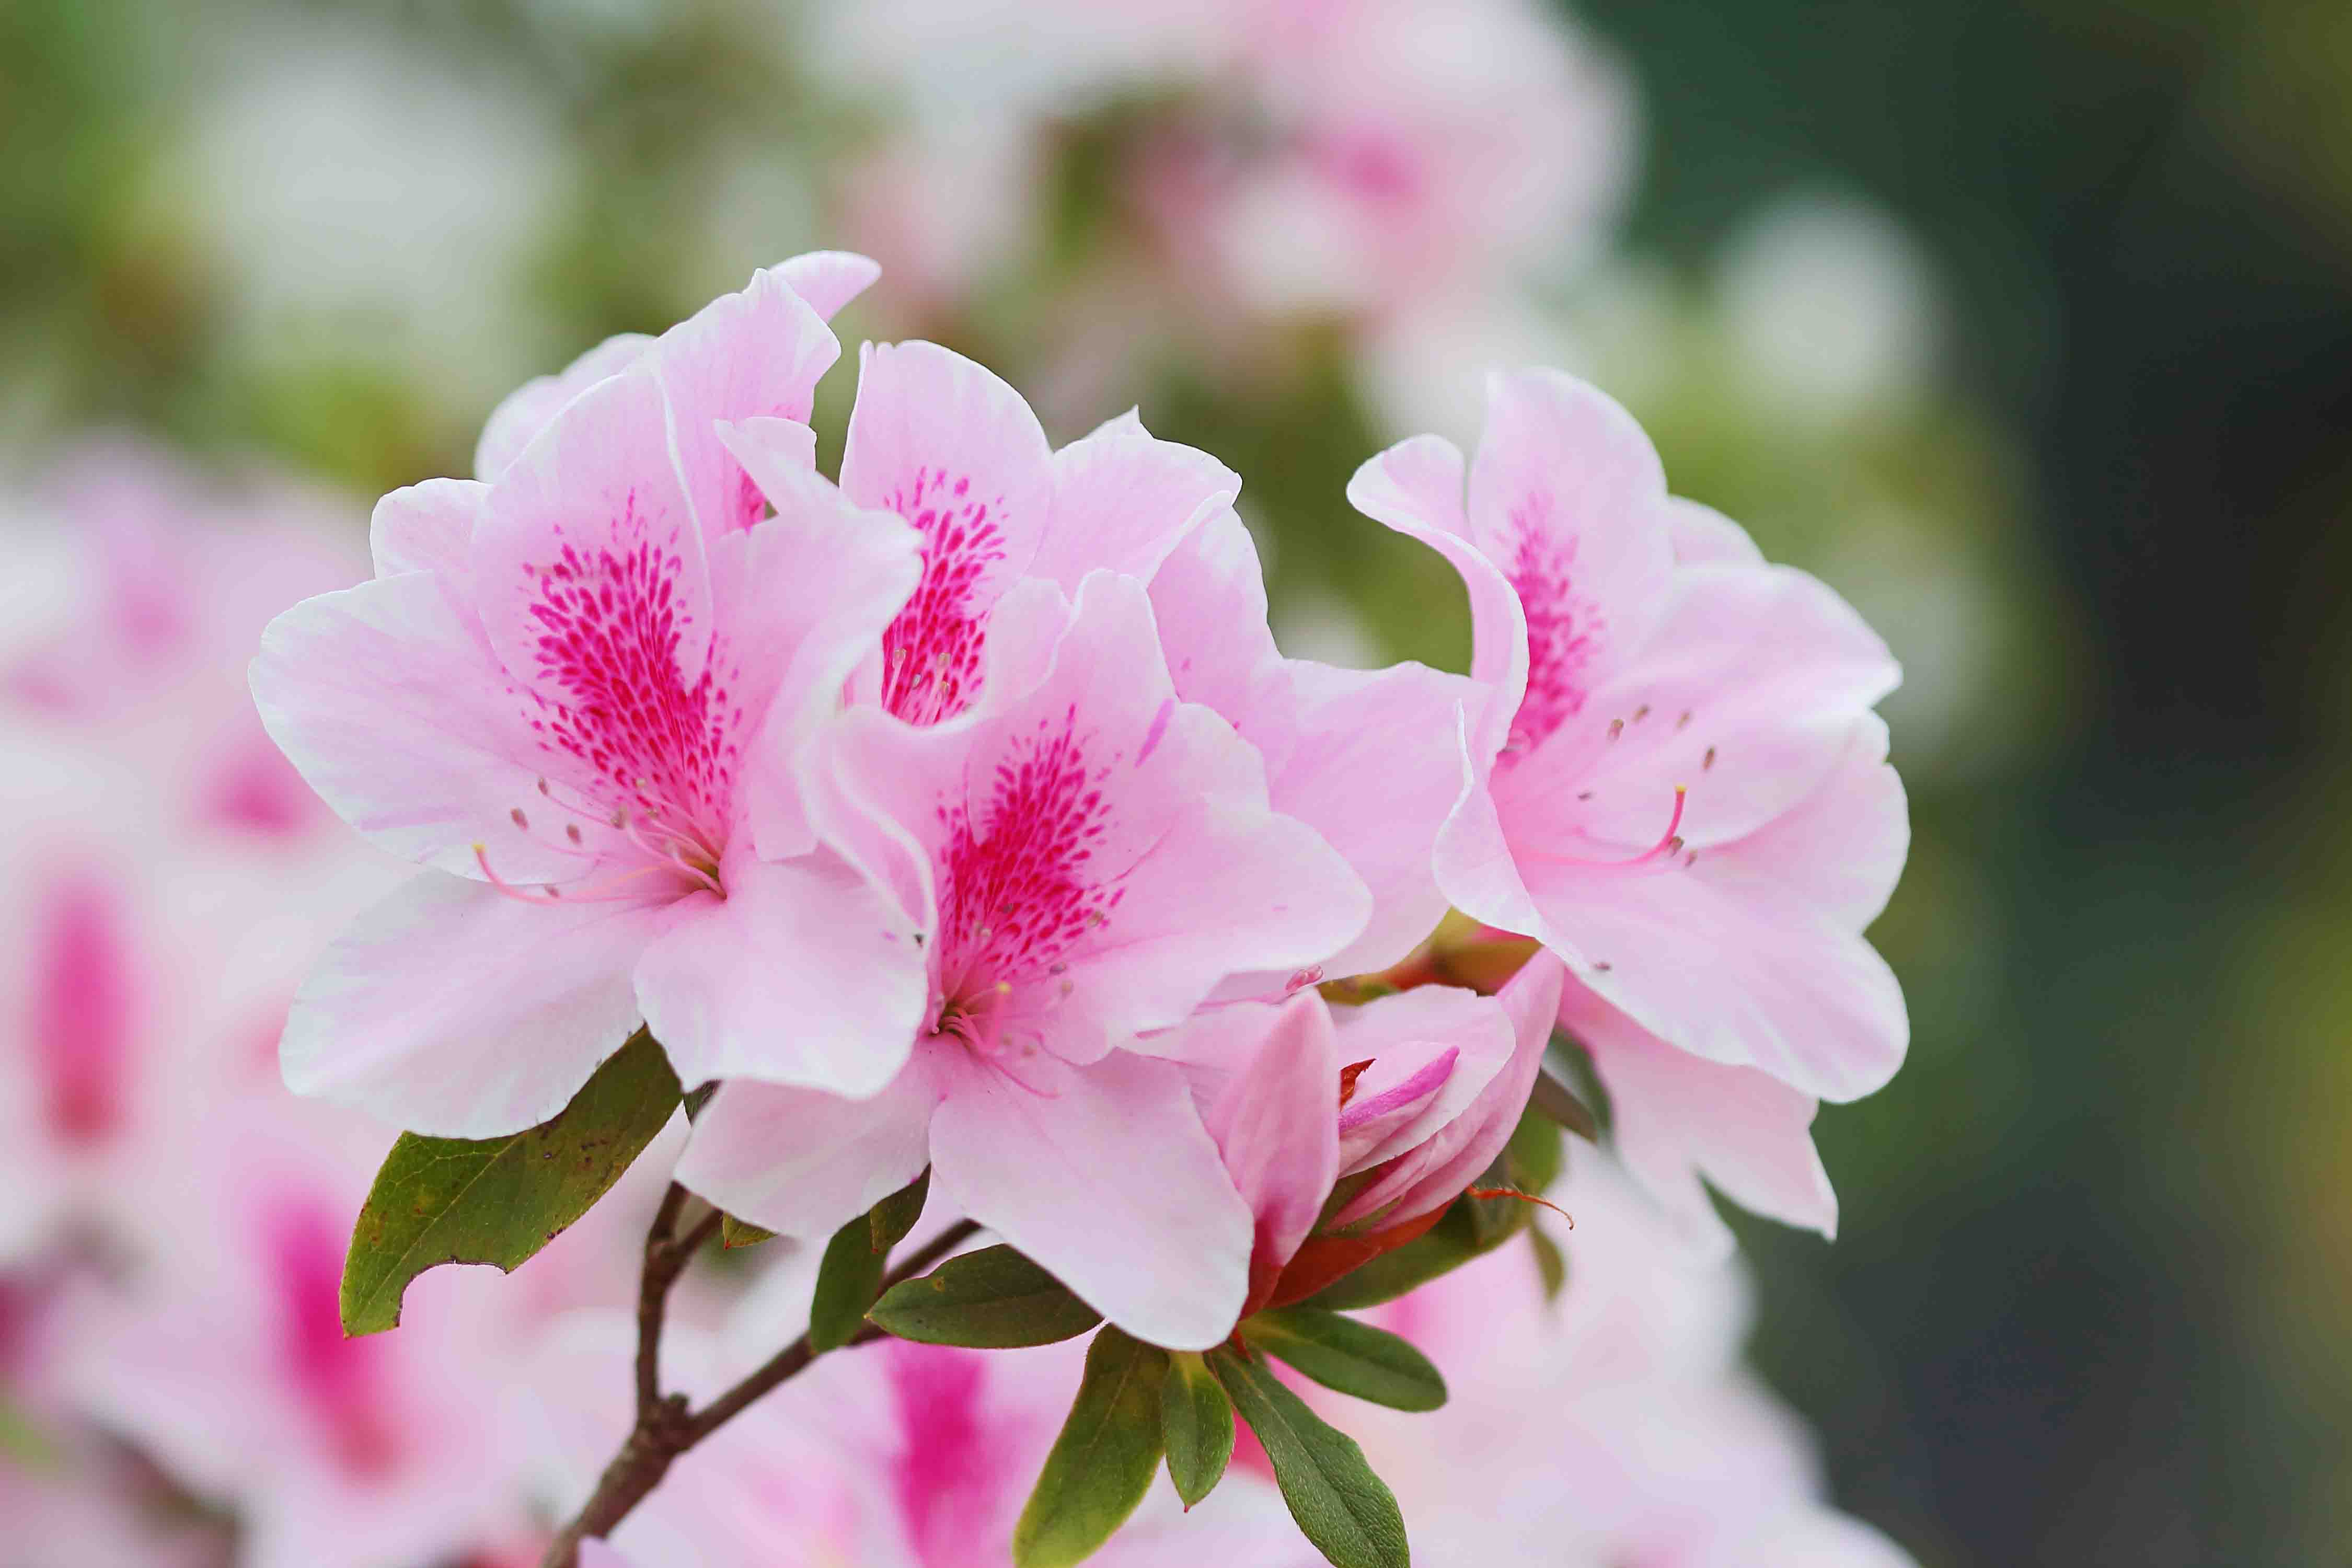 Pink azaleas in the park, close up and soft focus